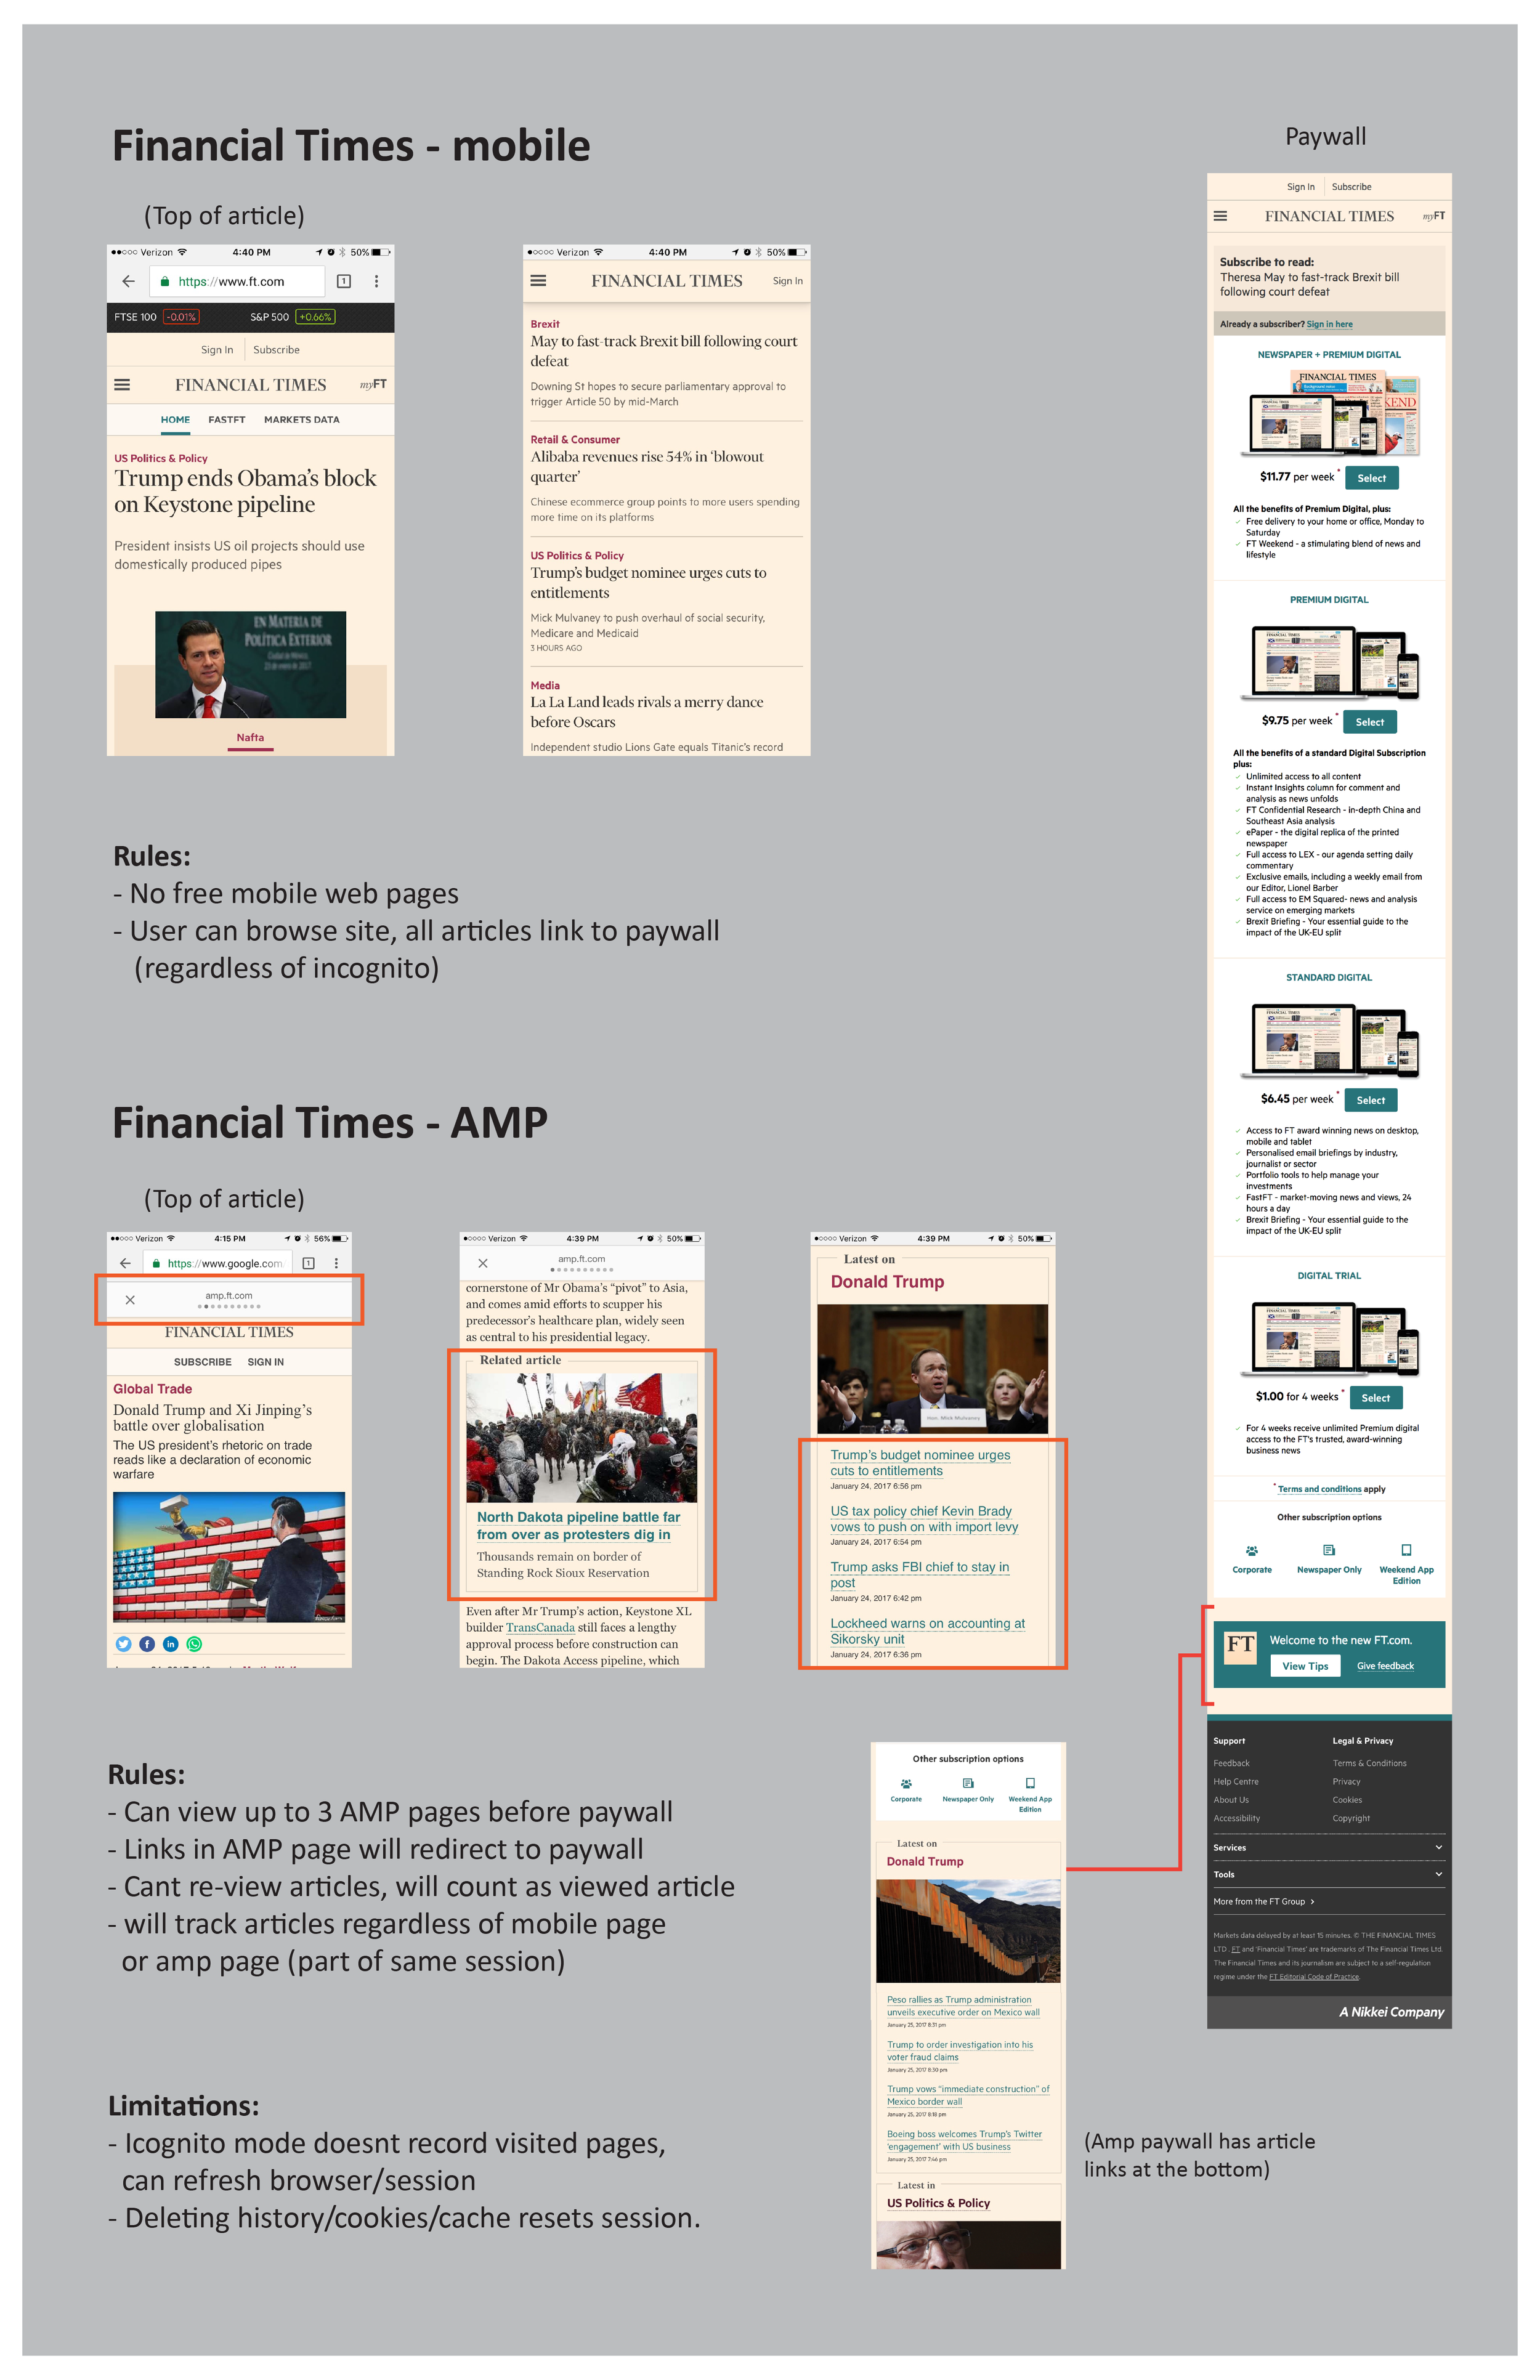 paywall_comp_ft-01.png